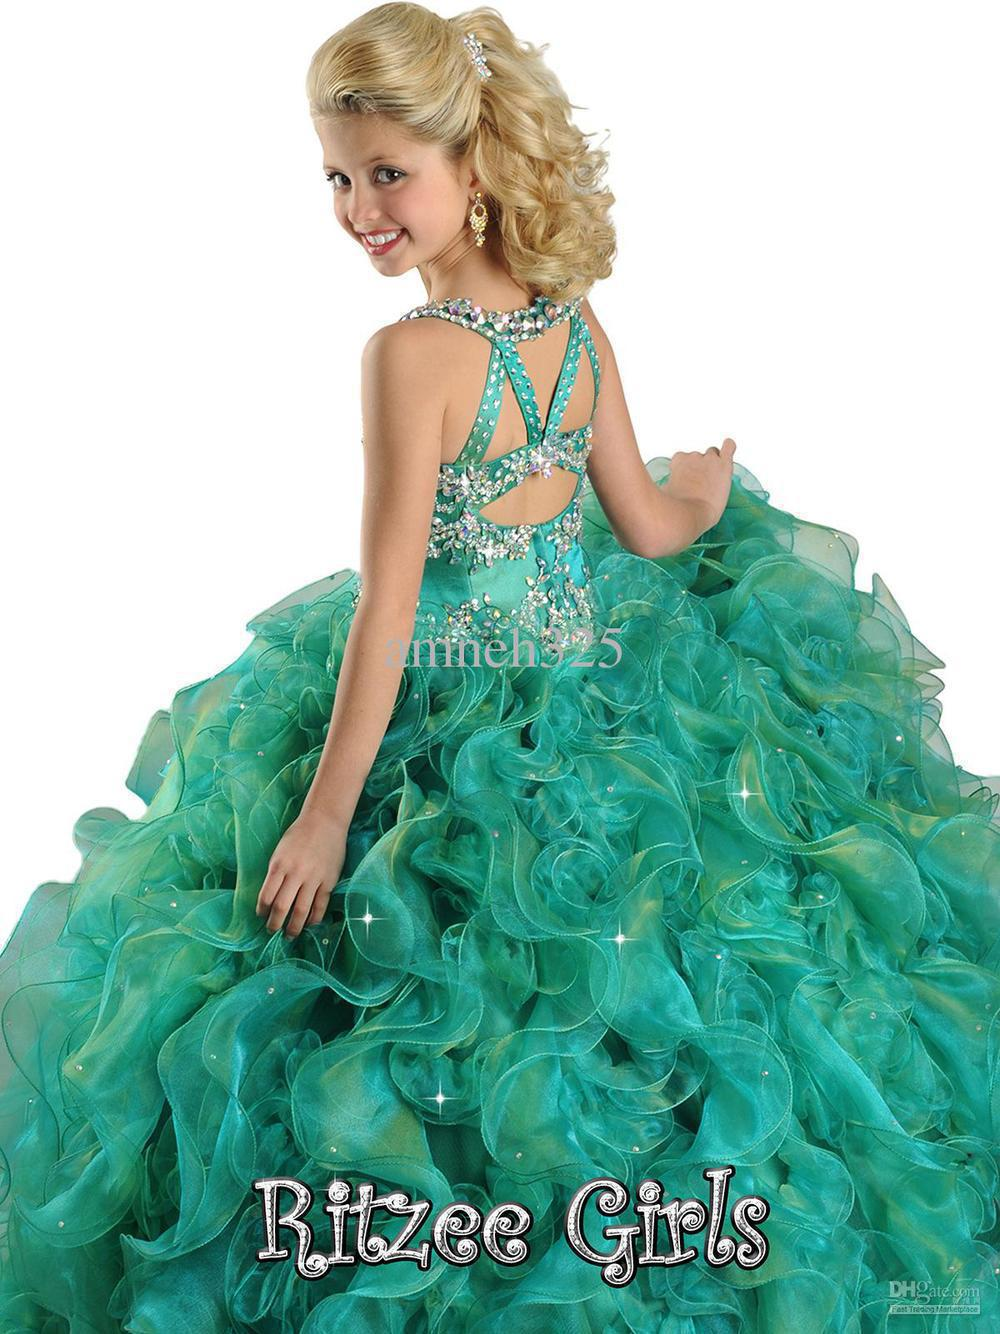 e5afe1e33e4e Hot Sale Beads Ball gown Beauty Kids Party Flower Girl Fresses Pageant Dress  Style-in Flower Girl Dresses from Weddings & Events on Aliexpress.com |  Alibaba ...